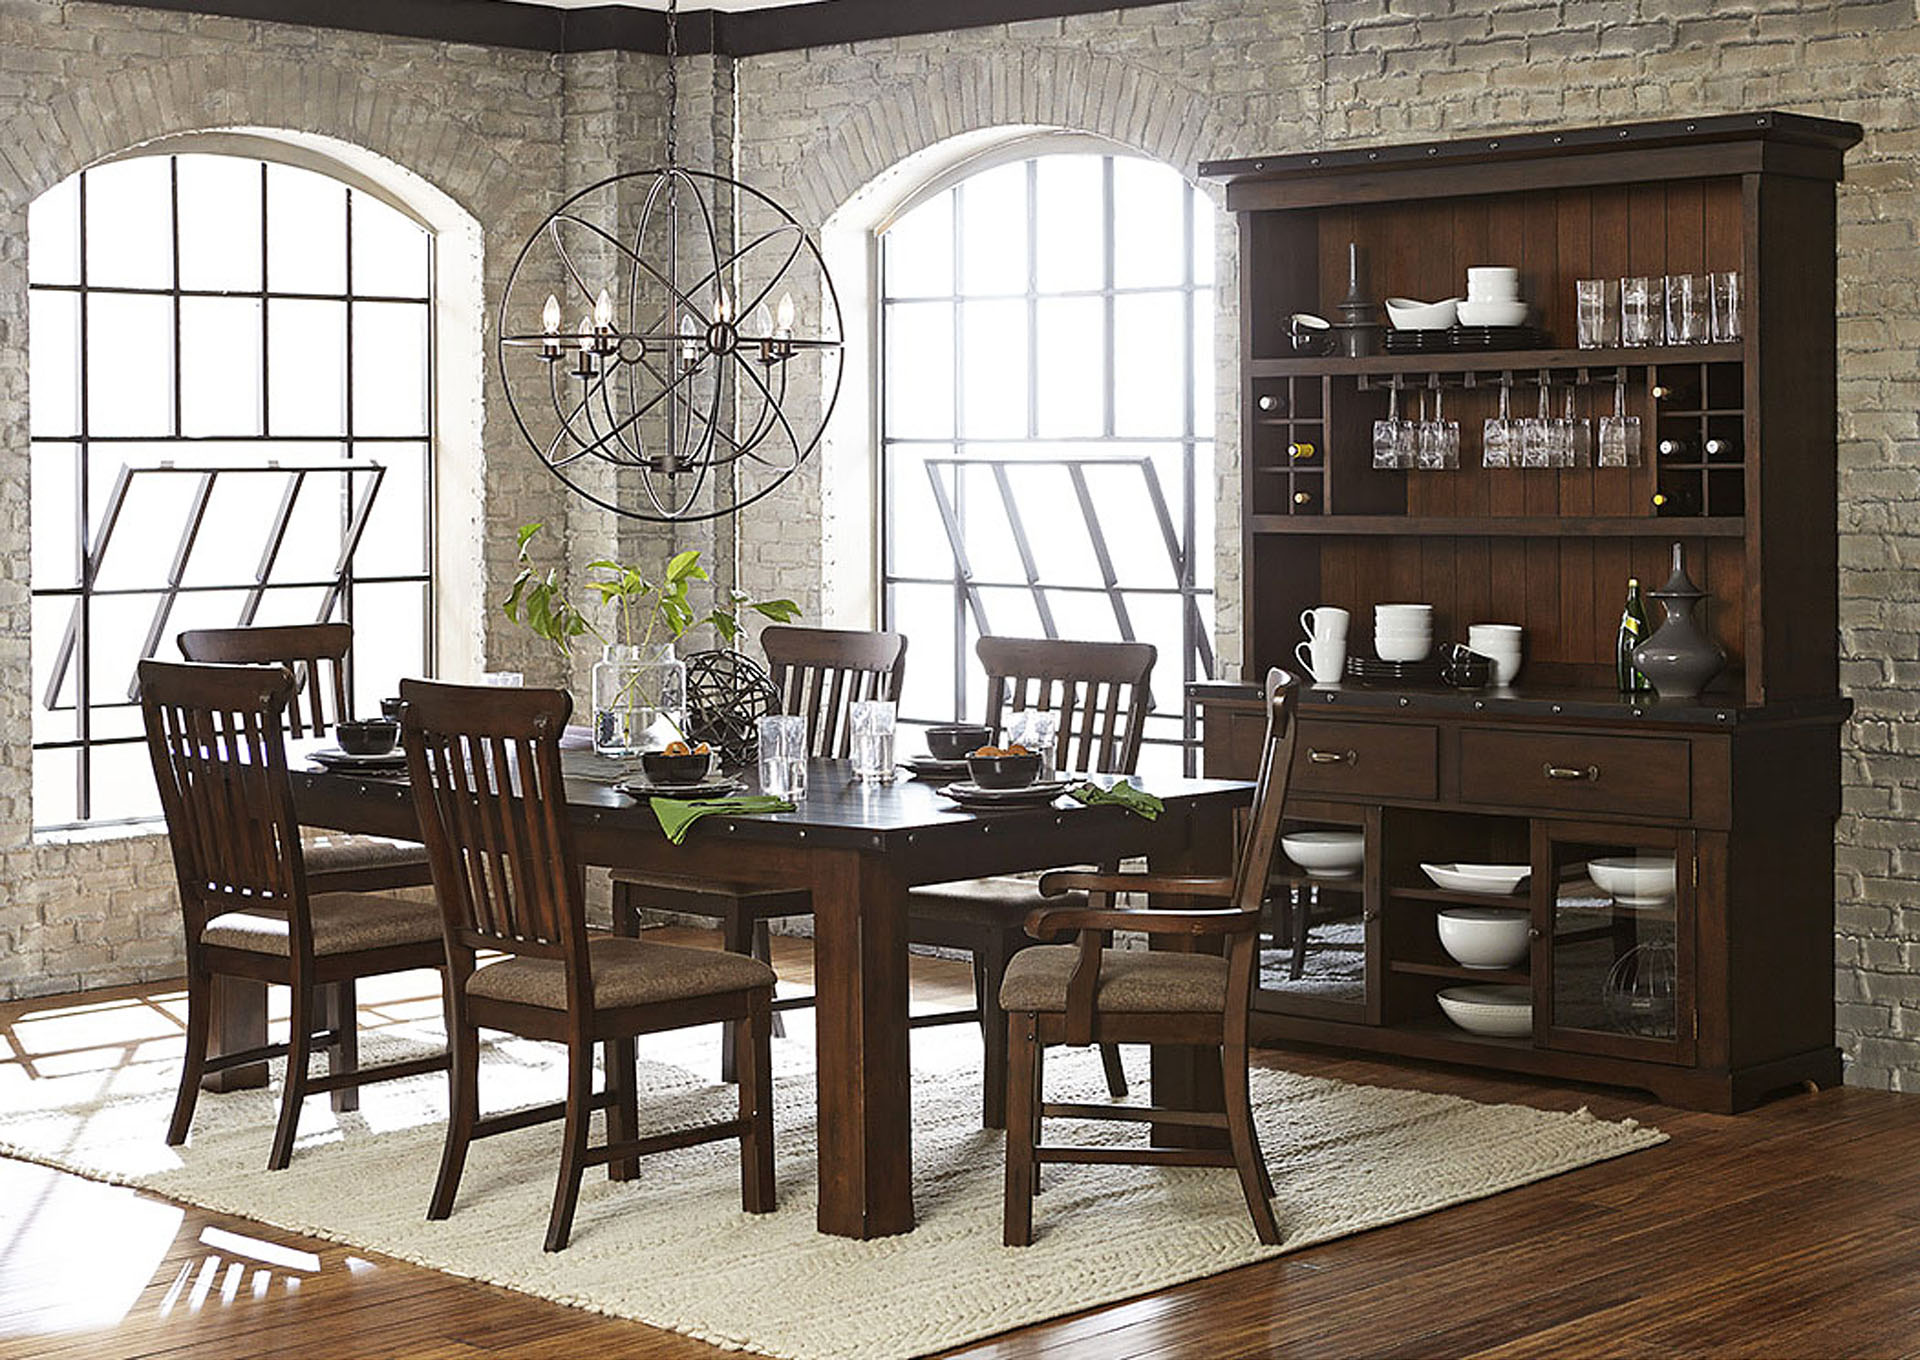 Dining Table w/18' Leaf,Homelegance